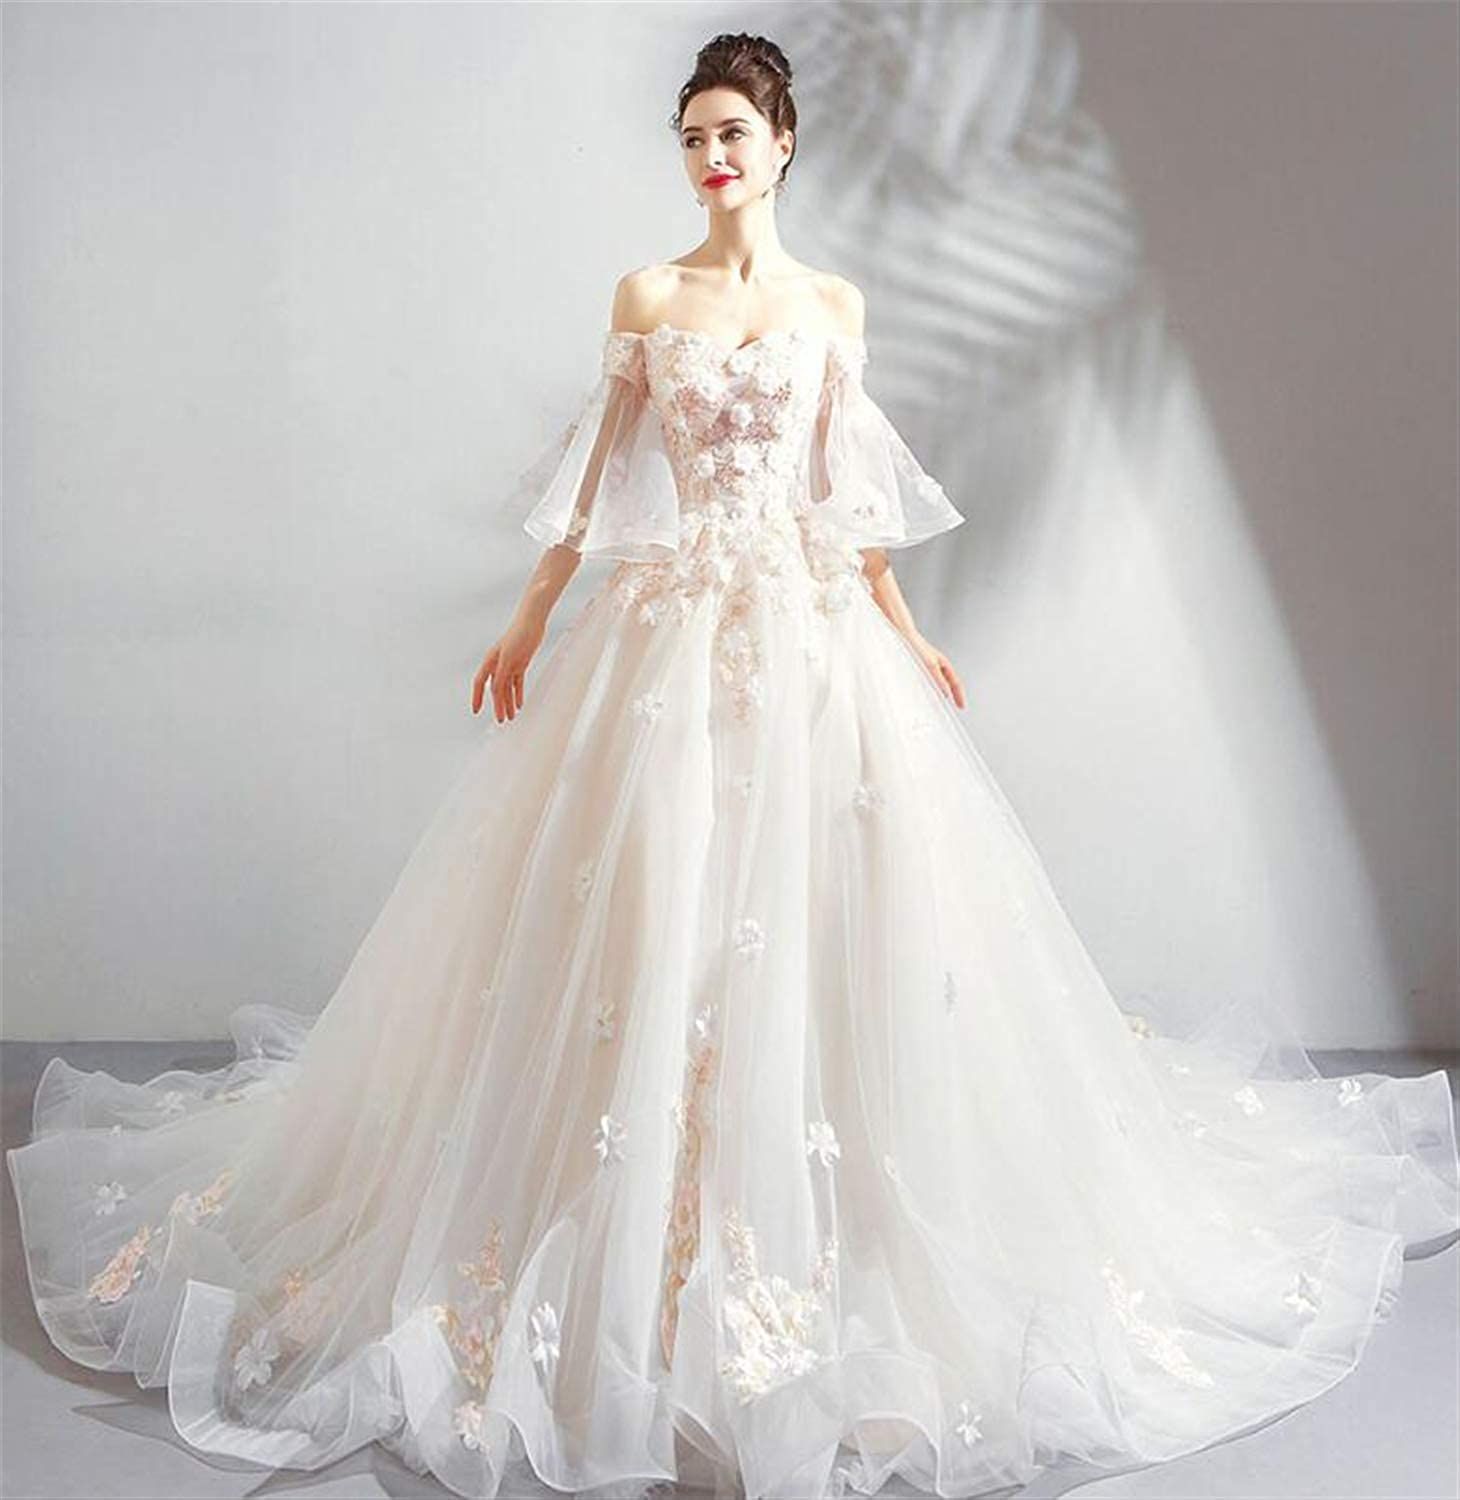 Wedding Dress,Elegant Ladies Strapless Tulle Embroidery Bride Wedding Dress Long Tail Party Dress White (Pink, Champagne)